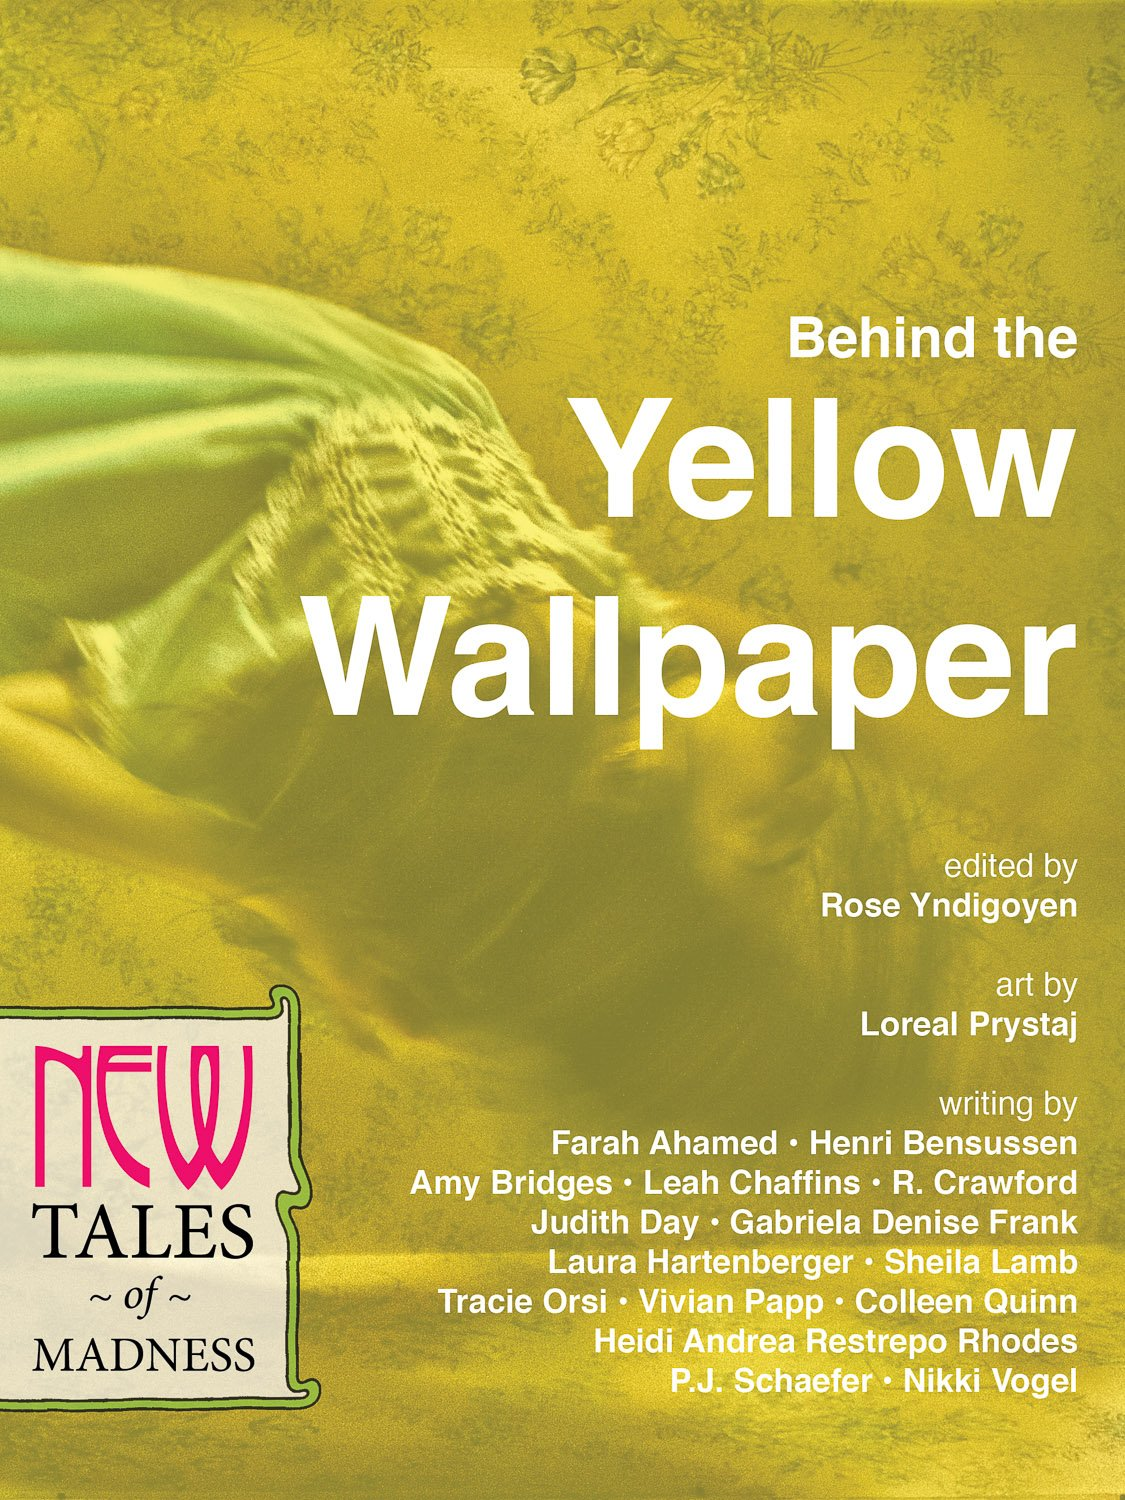 The yellow wallpaper isolation essay Student Clue Your Guide to 1125x1500